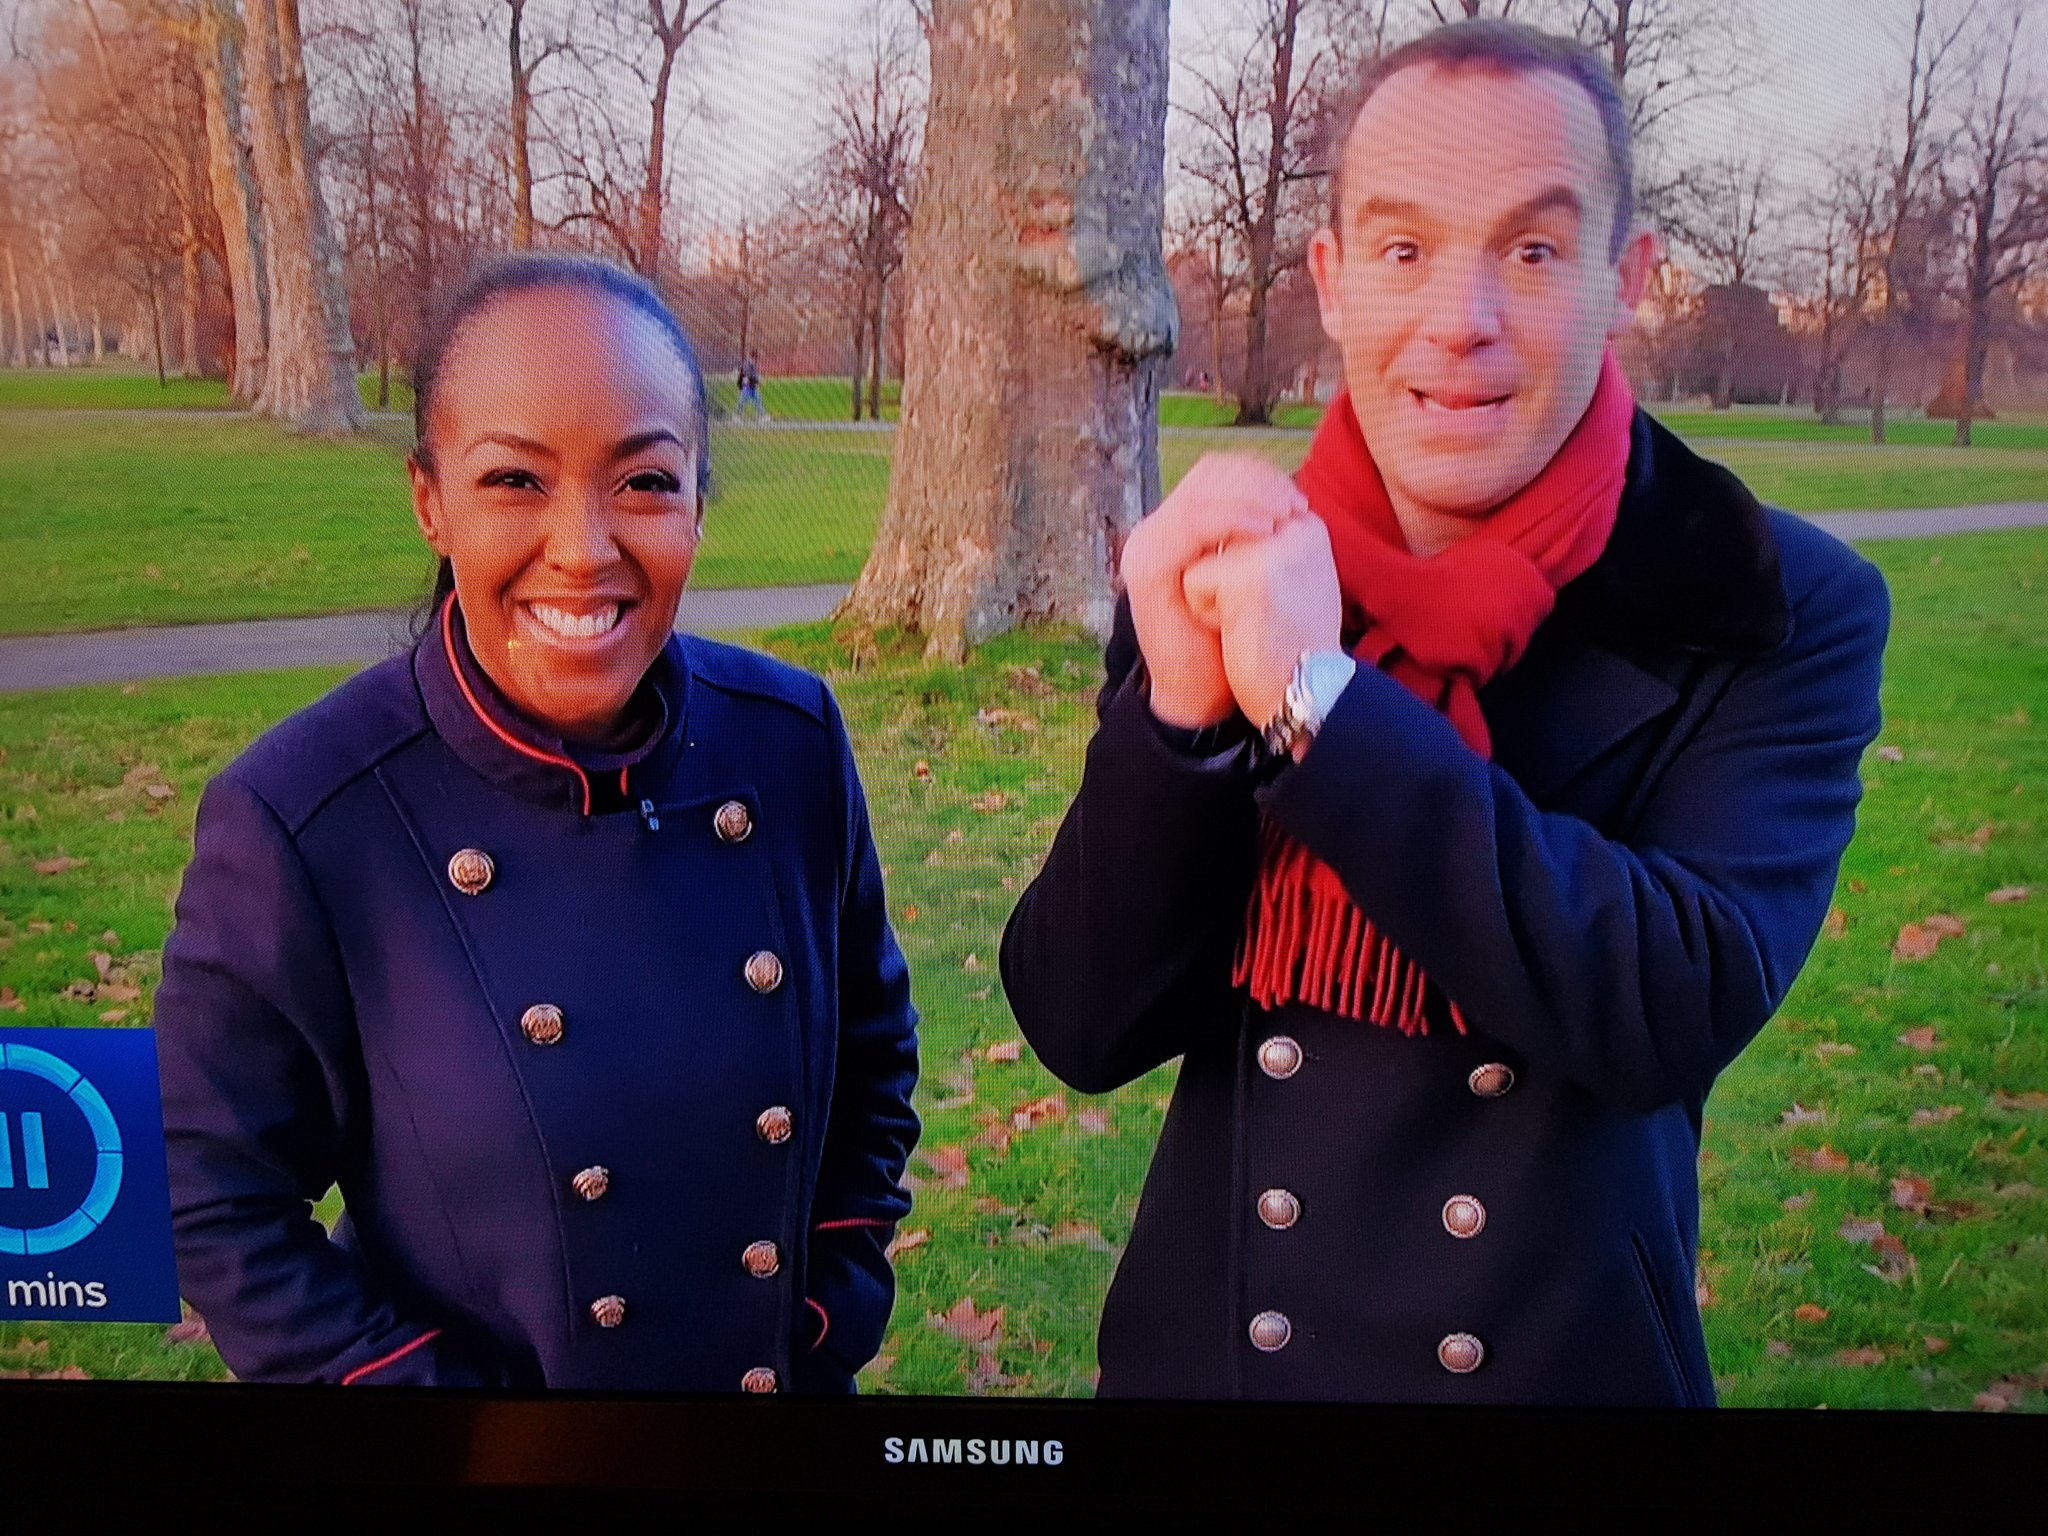 Bless them and their his and hers coats 🤣 @angellicabell @MartinSLewis @itvMLshow https://t.co/2LcKQzeo1Q